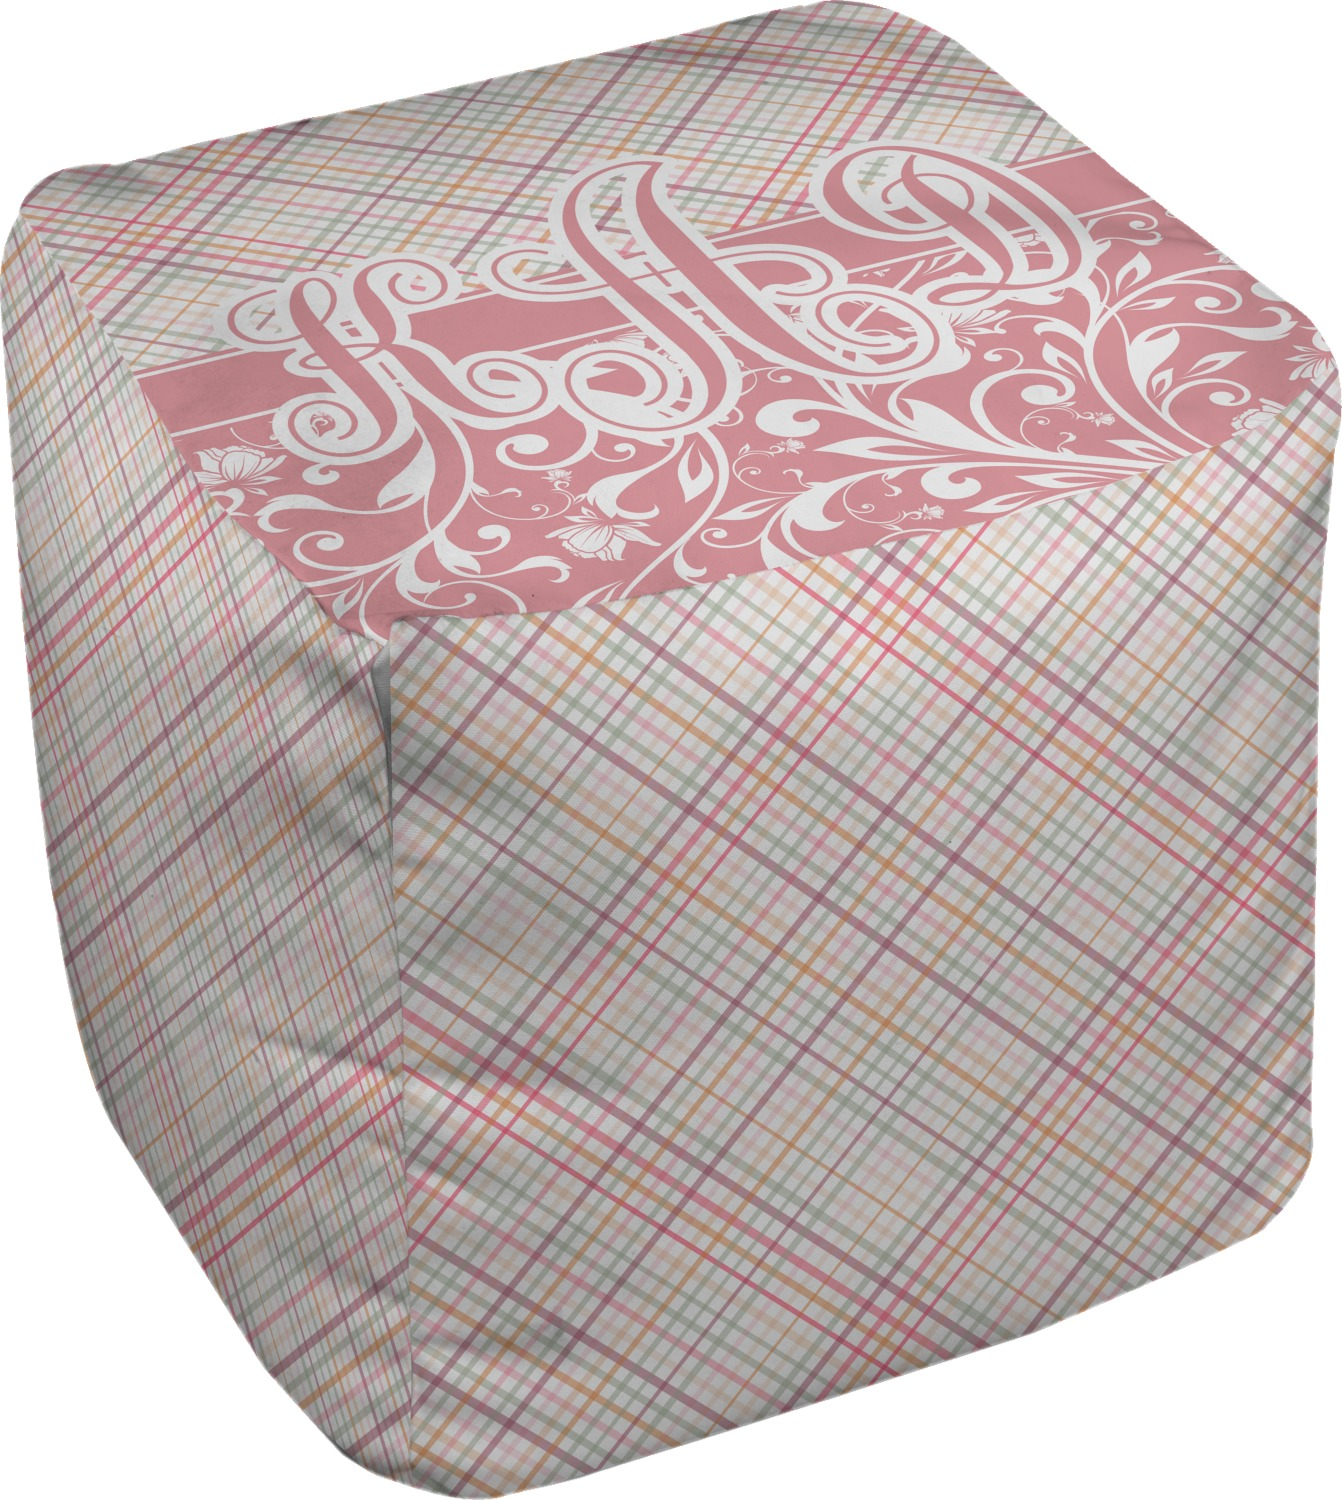 modern plaid floral cube pouf ottoman 18 personalized youcustomizeit. Black Bedroom Furniture Sets. Home Design Ideas